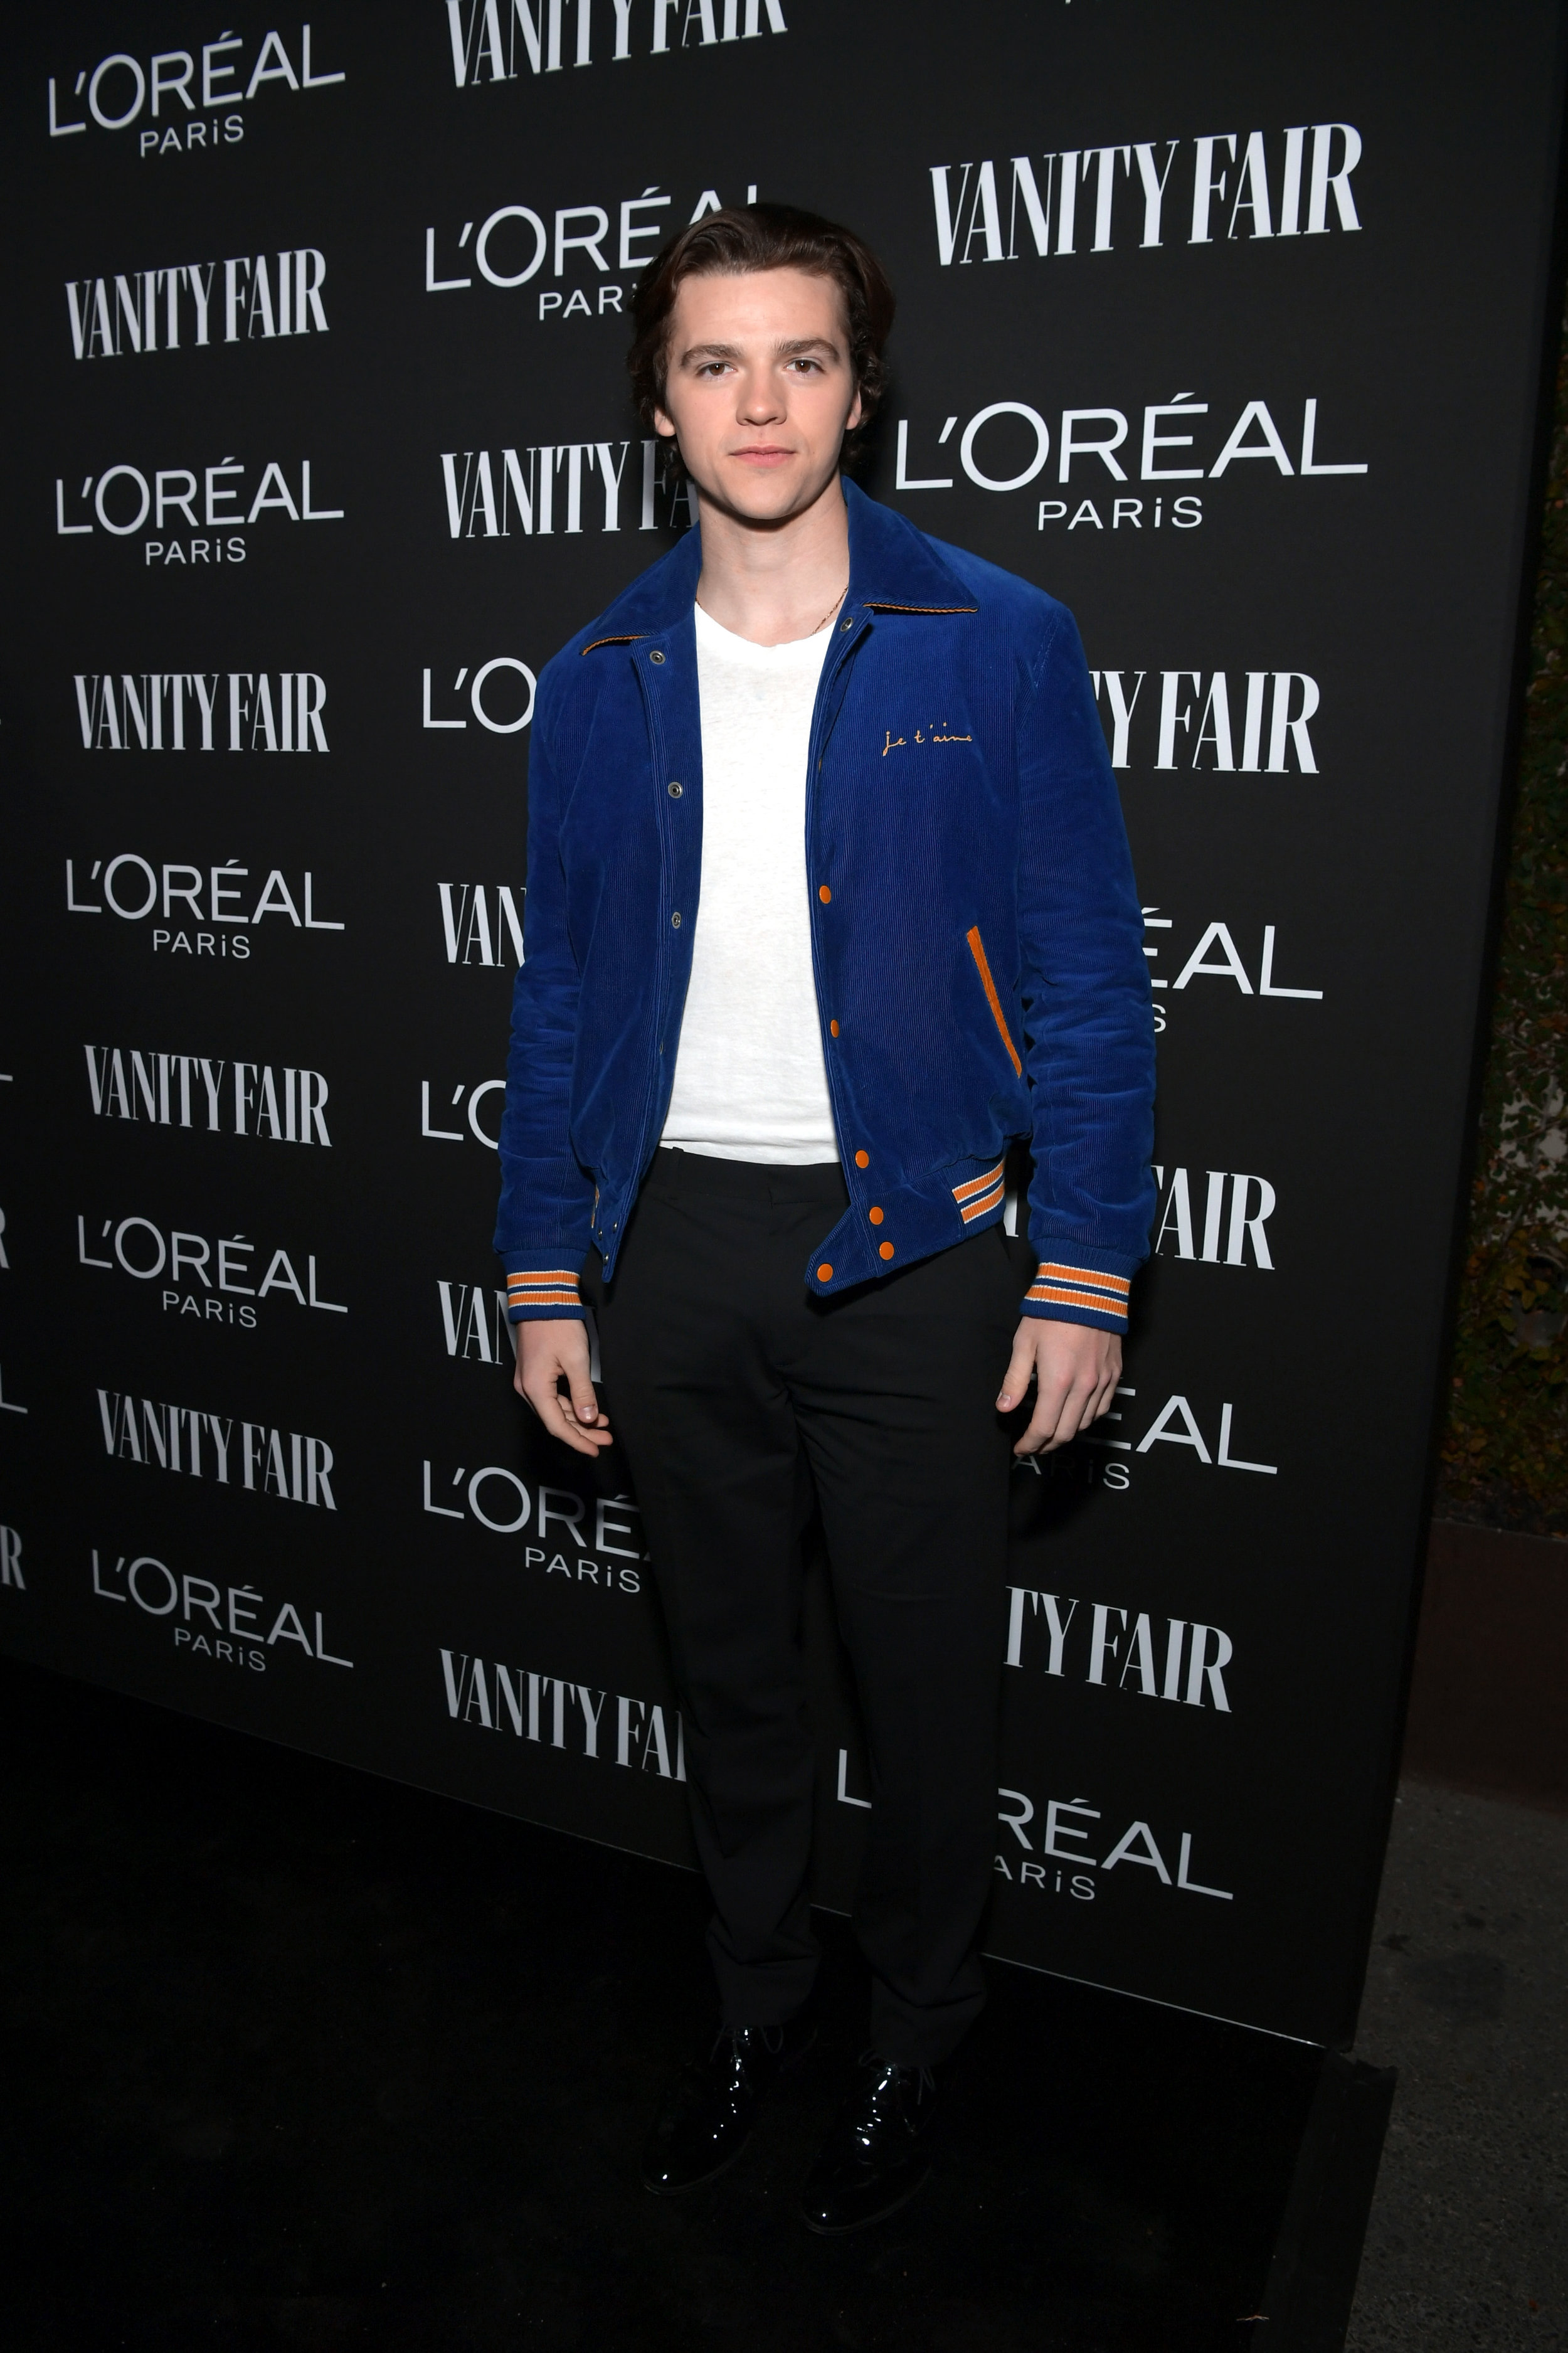 Vanity Fair And L'Oréal Paris Celebrate New Hollywood  WEST HOLLYWOOD, CA - FEBRUARY 19: Joel Courtney is seen as Vanity Fair and L'Oréal Paris Celebrate New Hollywood on February 19, 2019 in Los Angeles, California. (Photo by Emma McIntyre/Getty Images for Vanity Fair).    Joel is wearing a Saint Laurent jacket, Kelly Cole shirt, Theory pants and Calvin Klein shoes.